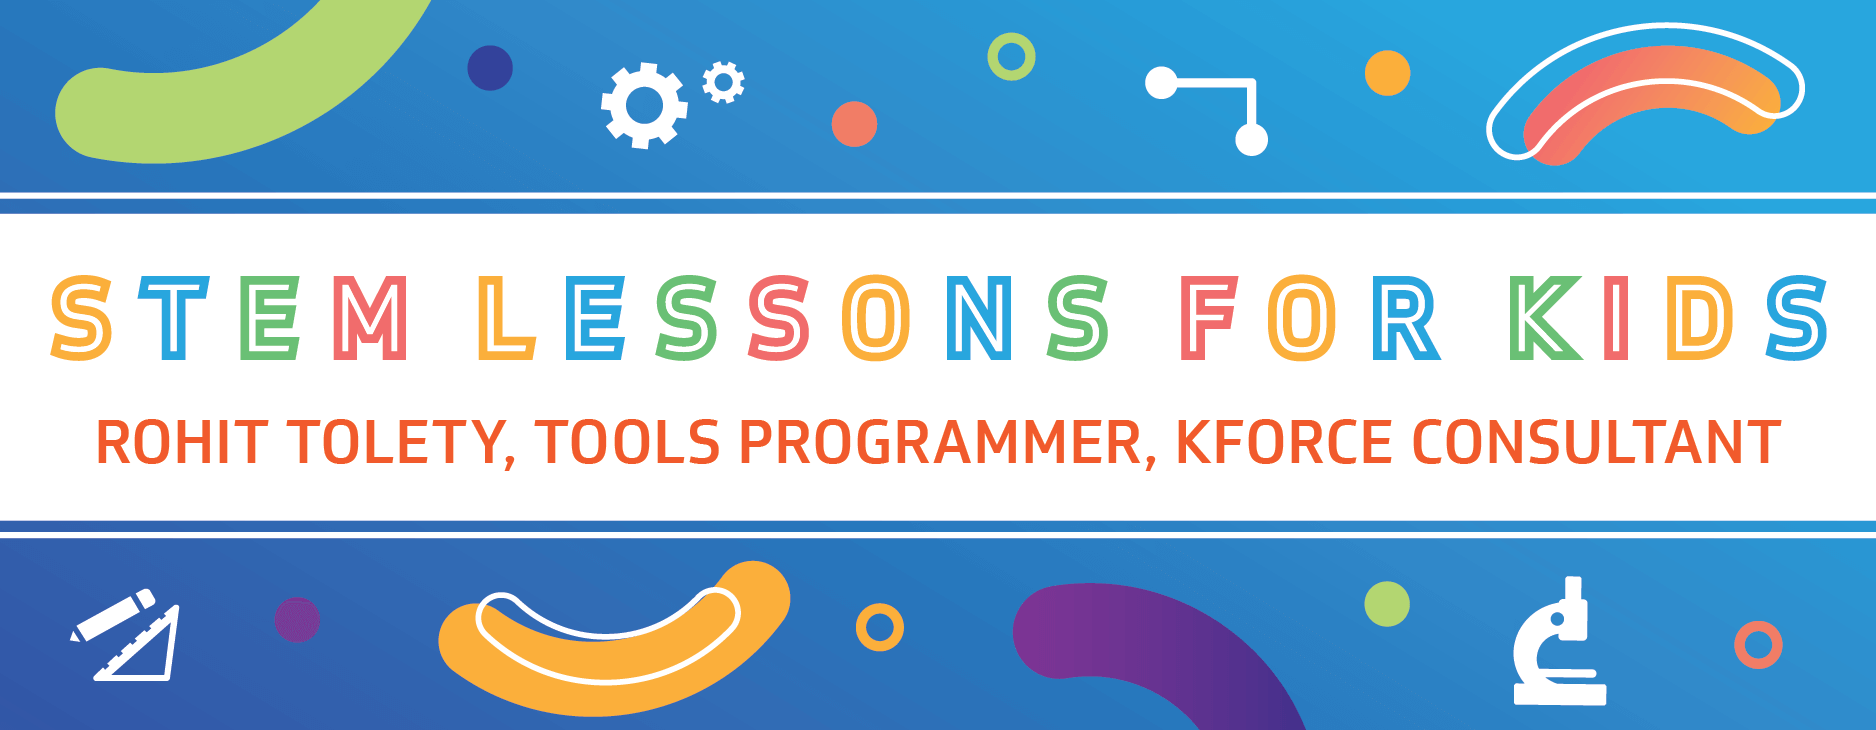 STEM Lessons for Kids Rohit Tolety, Tools Programmer